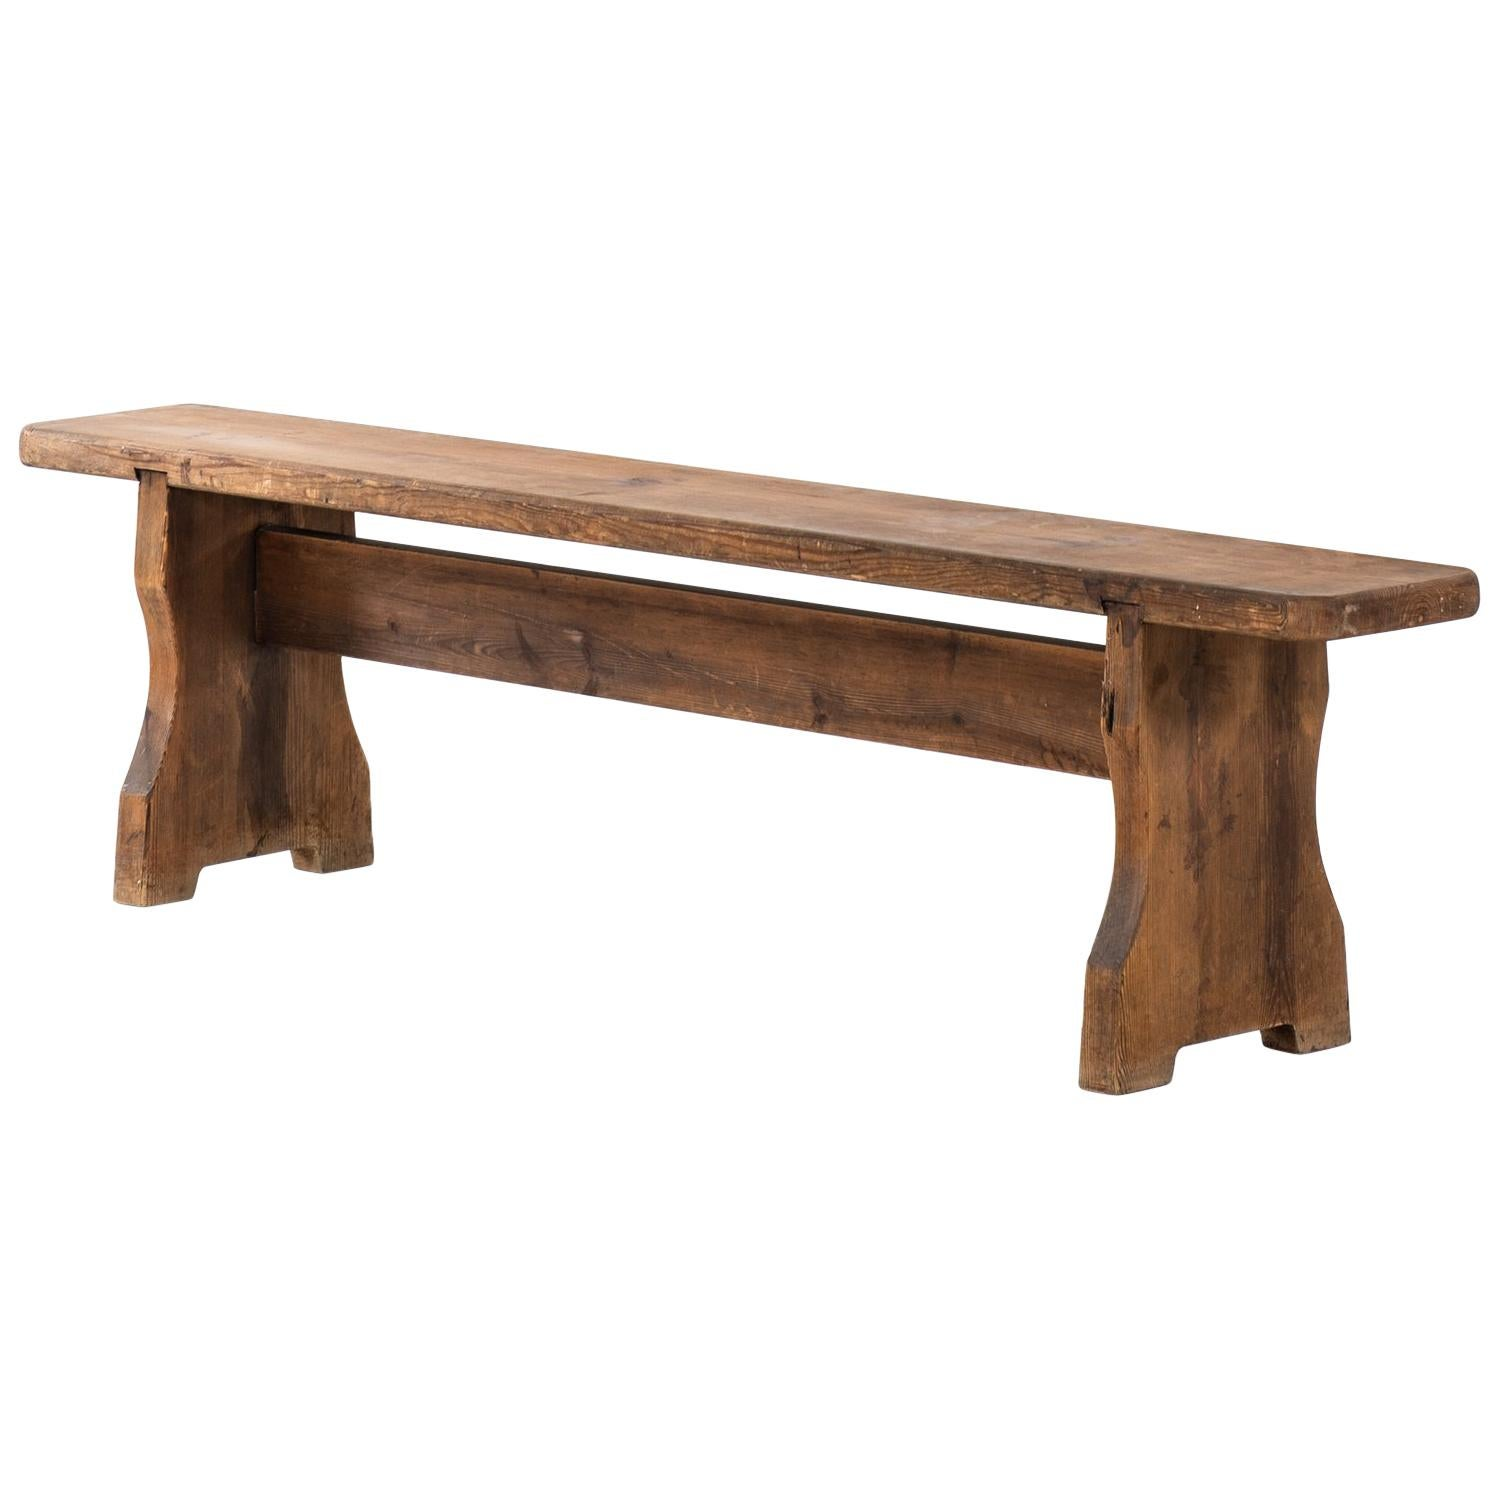 Bench in Acid Treated Pine Produced in Sweden